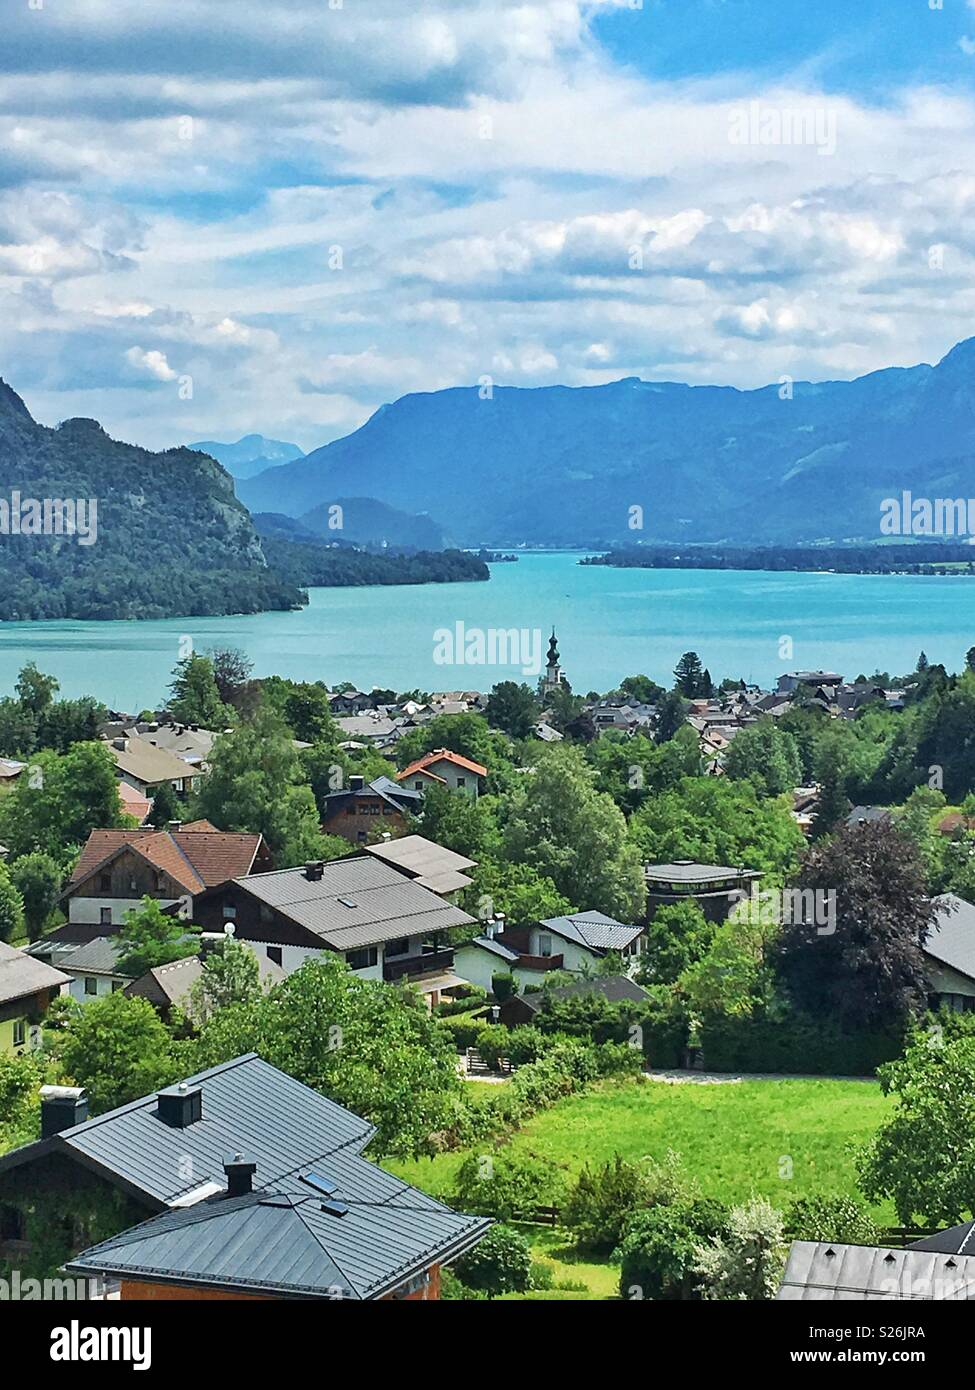 Sankt Gilgen and Lake Wolfsgang in Austria - Stock Image